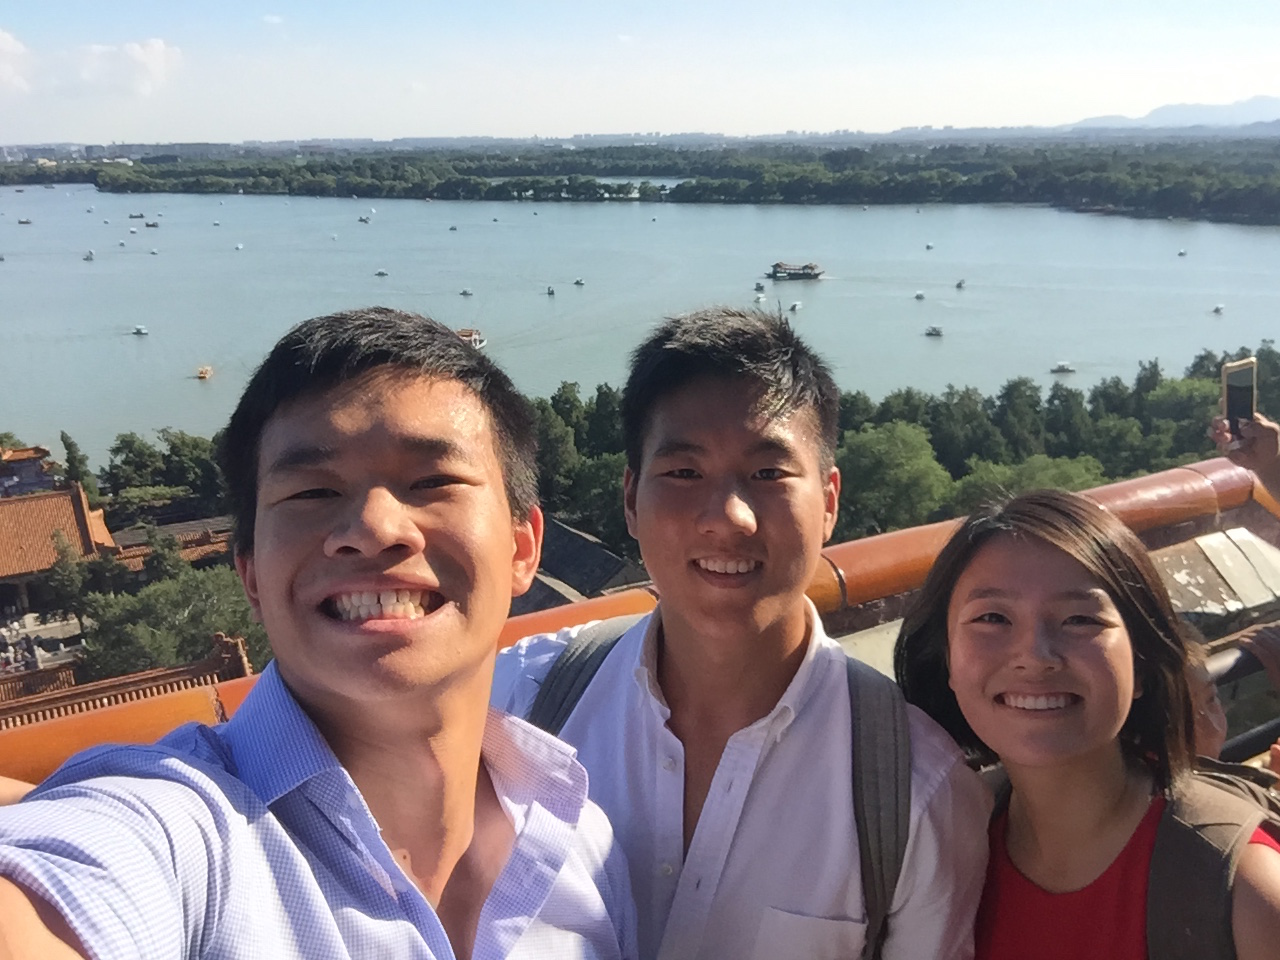 Took a short break in between meetings to visit the Summer Palace in Beijing. (Hiking in business casual is not recommended.) August 2016.